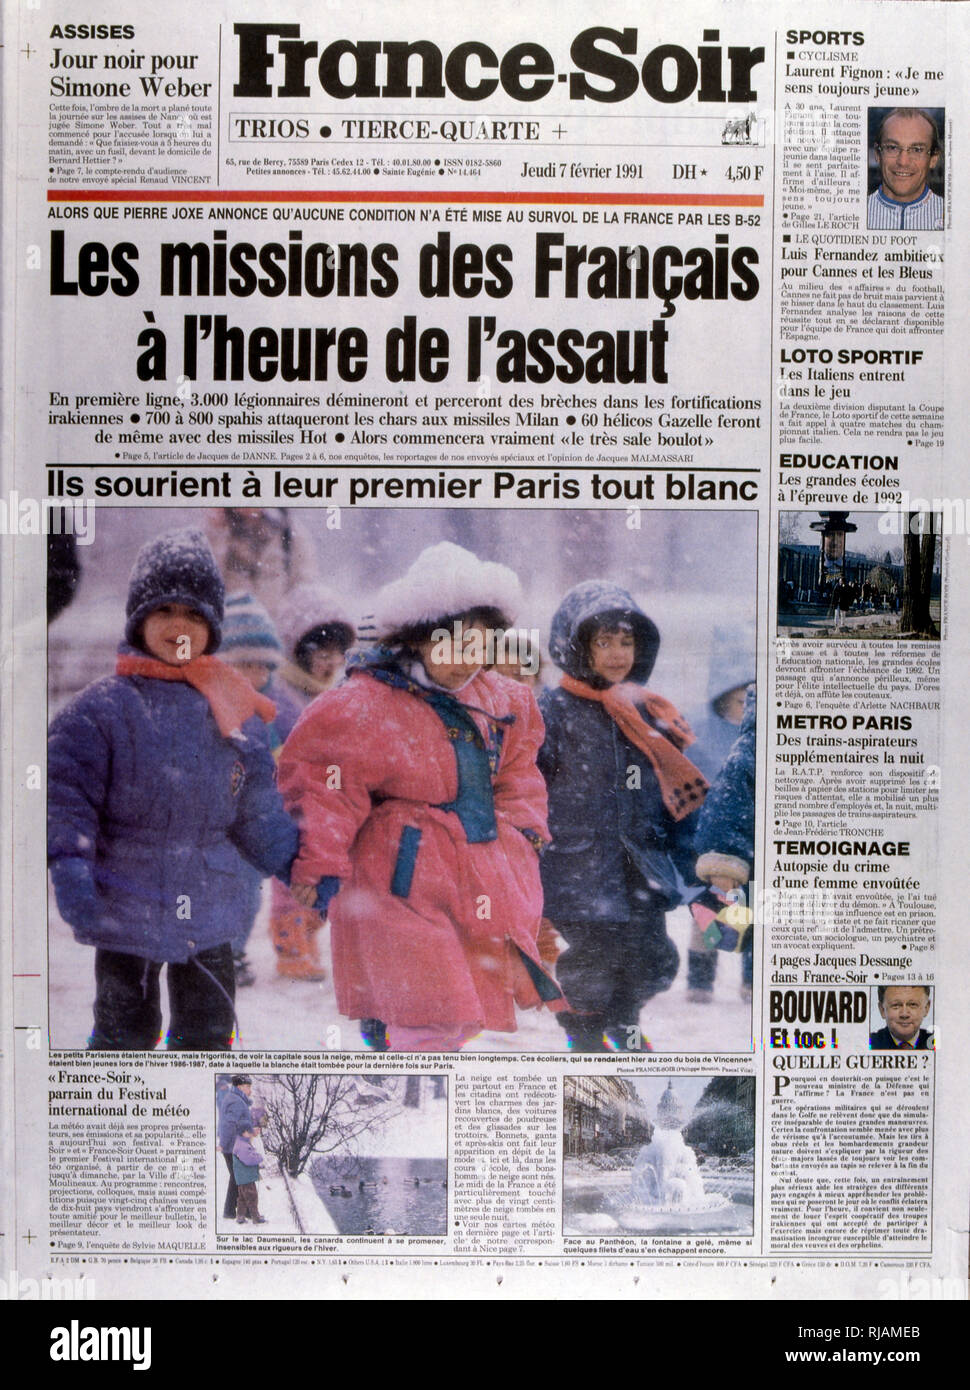 Headline of the French publication 'France-Soir' reporting on the Gulf War; February 1991.  The Gulf War (2 August 1990 - 28 February 1991), codenamed Operation Desert Shield and Operation Desert Storm, was a war waged by coalition forces from 35 nations led by the United States against Iraq in response to Iraq's invasion and annexation of Kuwait. - Stock Image